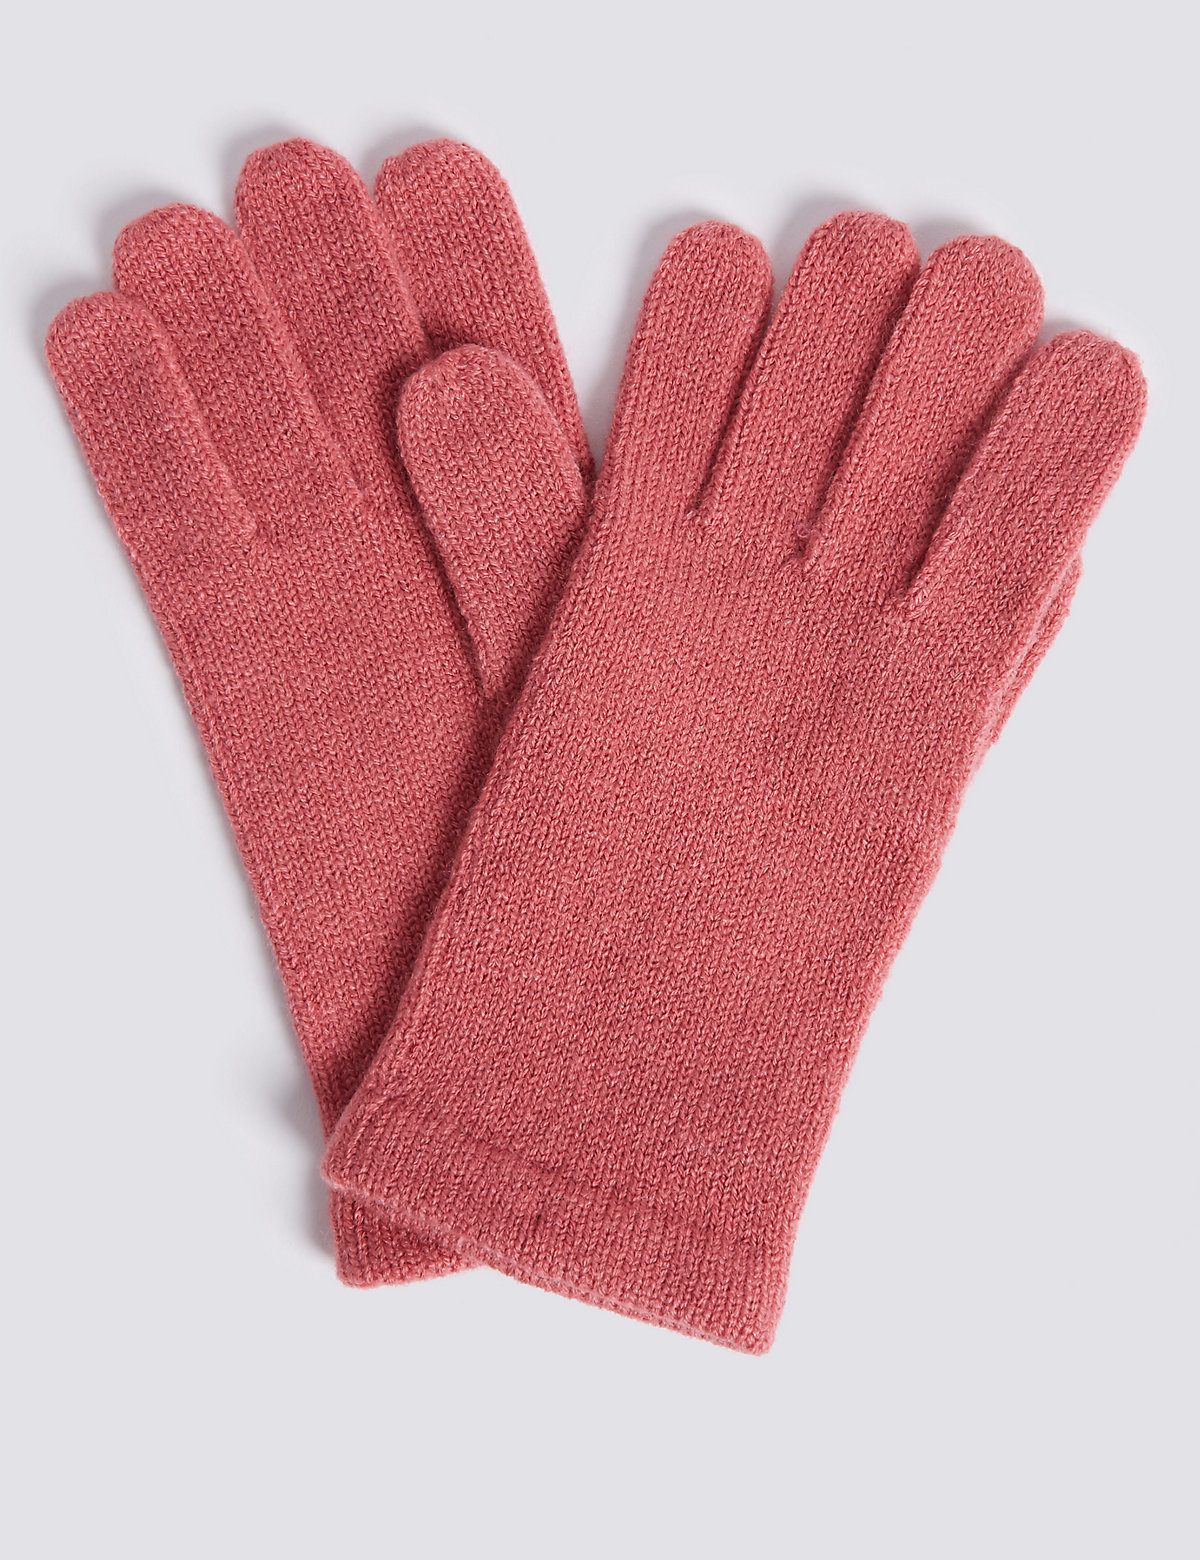 M Amp S Collection Knitted Gloves 163 6 00 Gay Times